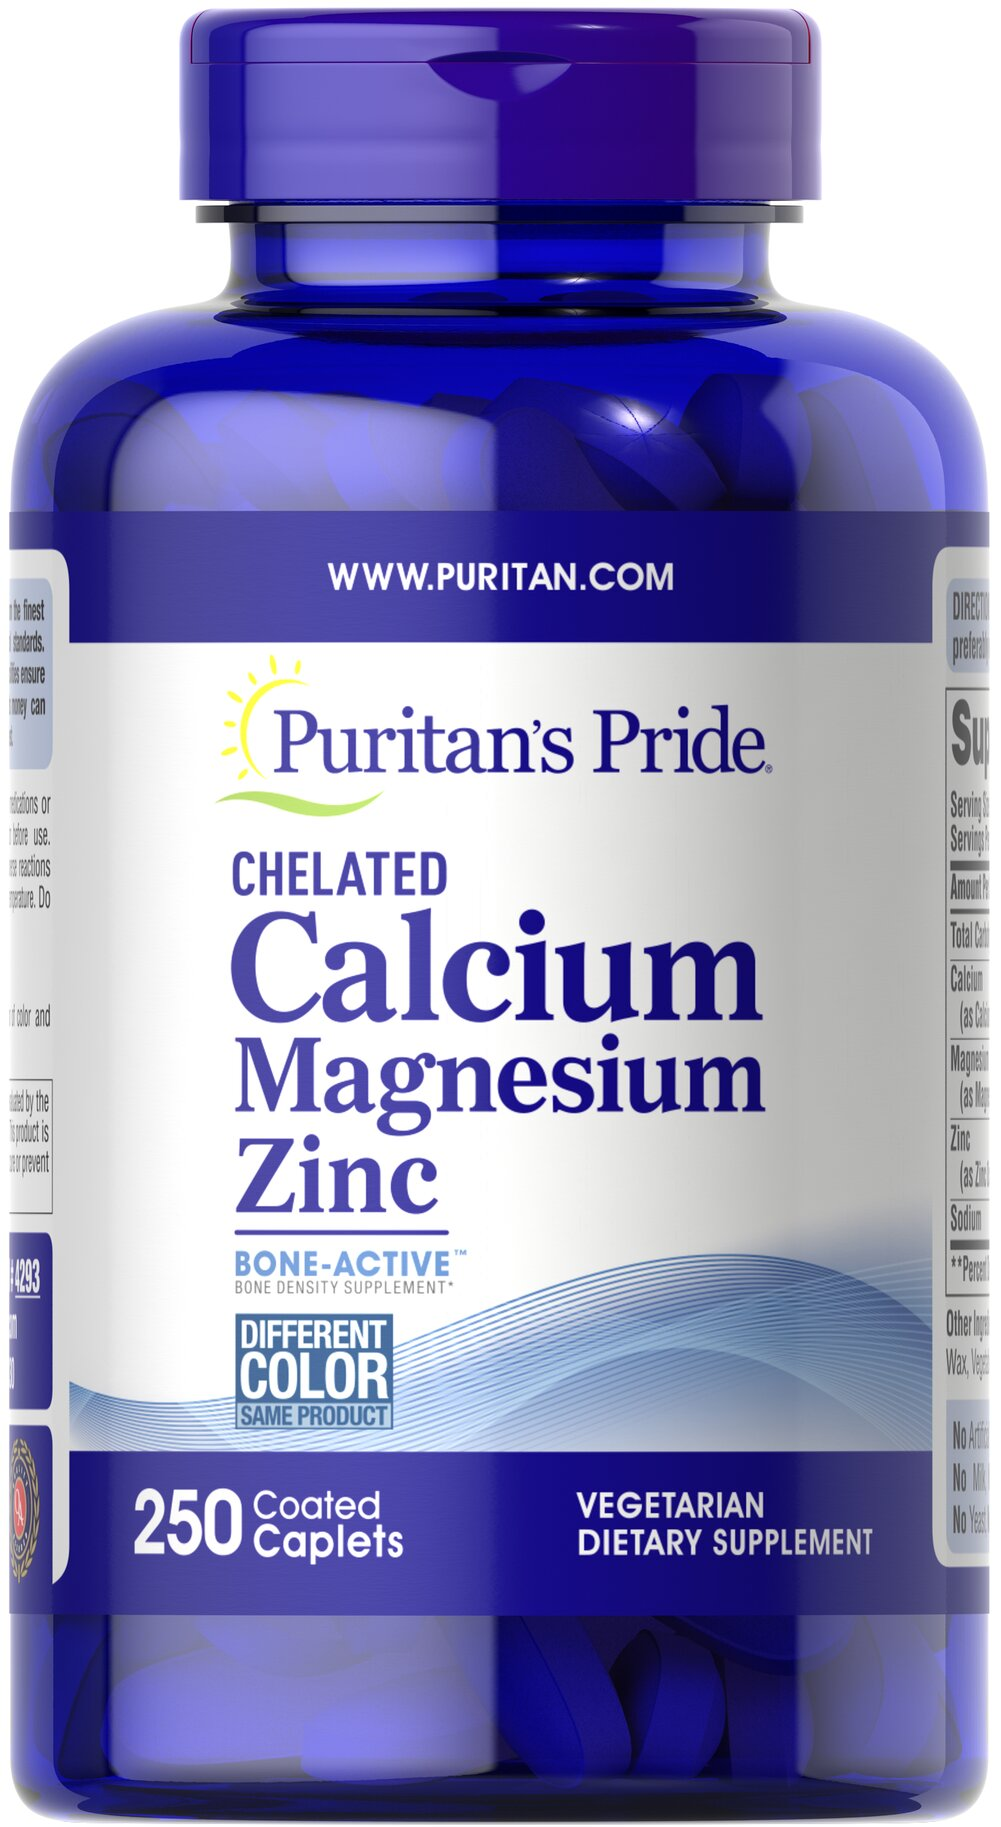 Chelated Calcium Magnesium Zinc <p>Looking for extra support for your bones?</p><p>Puritan's Pride offers a high quality Calcium, Magnesium, Zinc supplement that delivers 1000 mg Calcium, 400 mg Magnesium and 25 mg Zinc in one chelated form for optimal absorption.</p> 250 Caplets 1000 mg/400 mg/25 mg $16.99